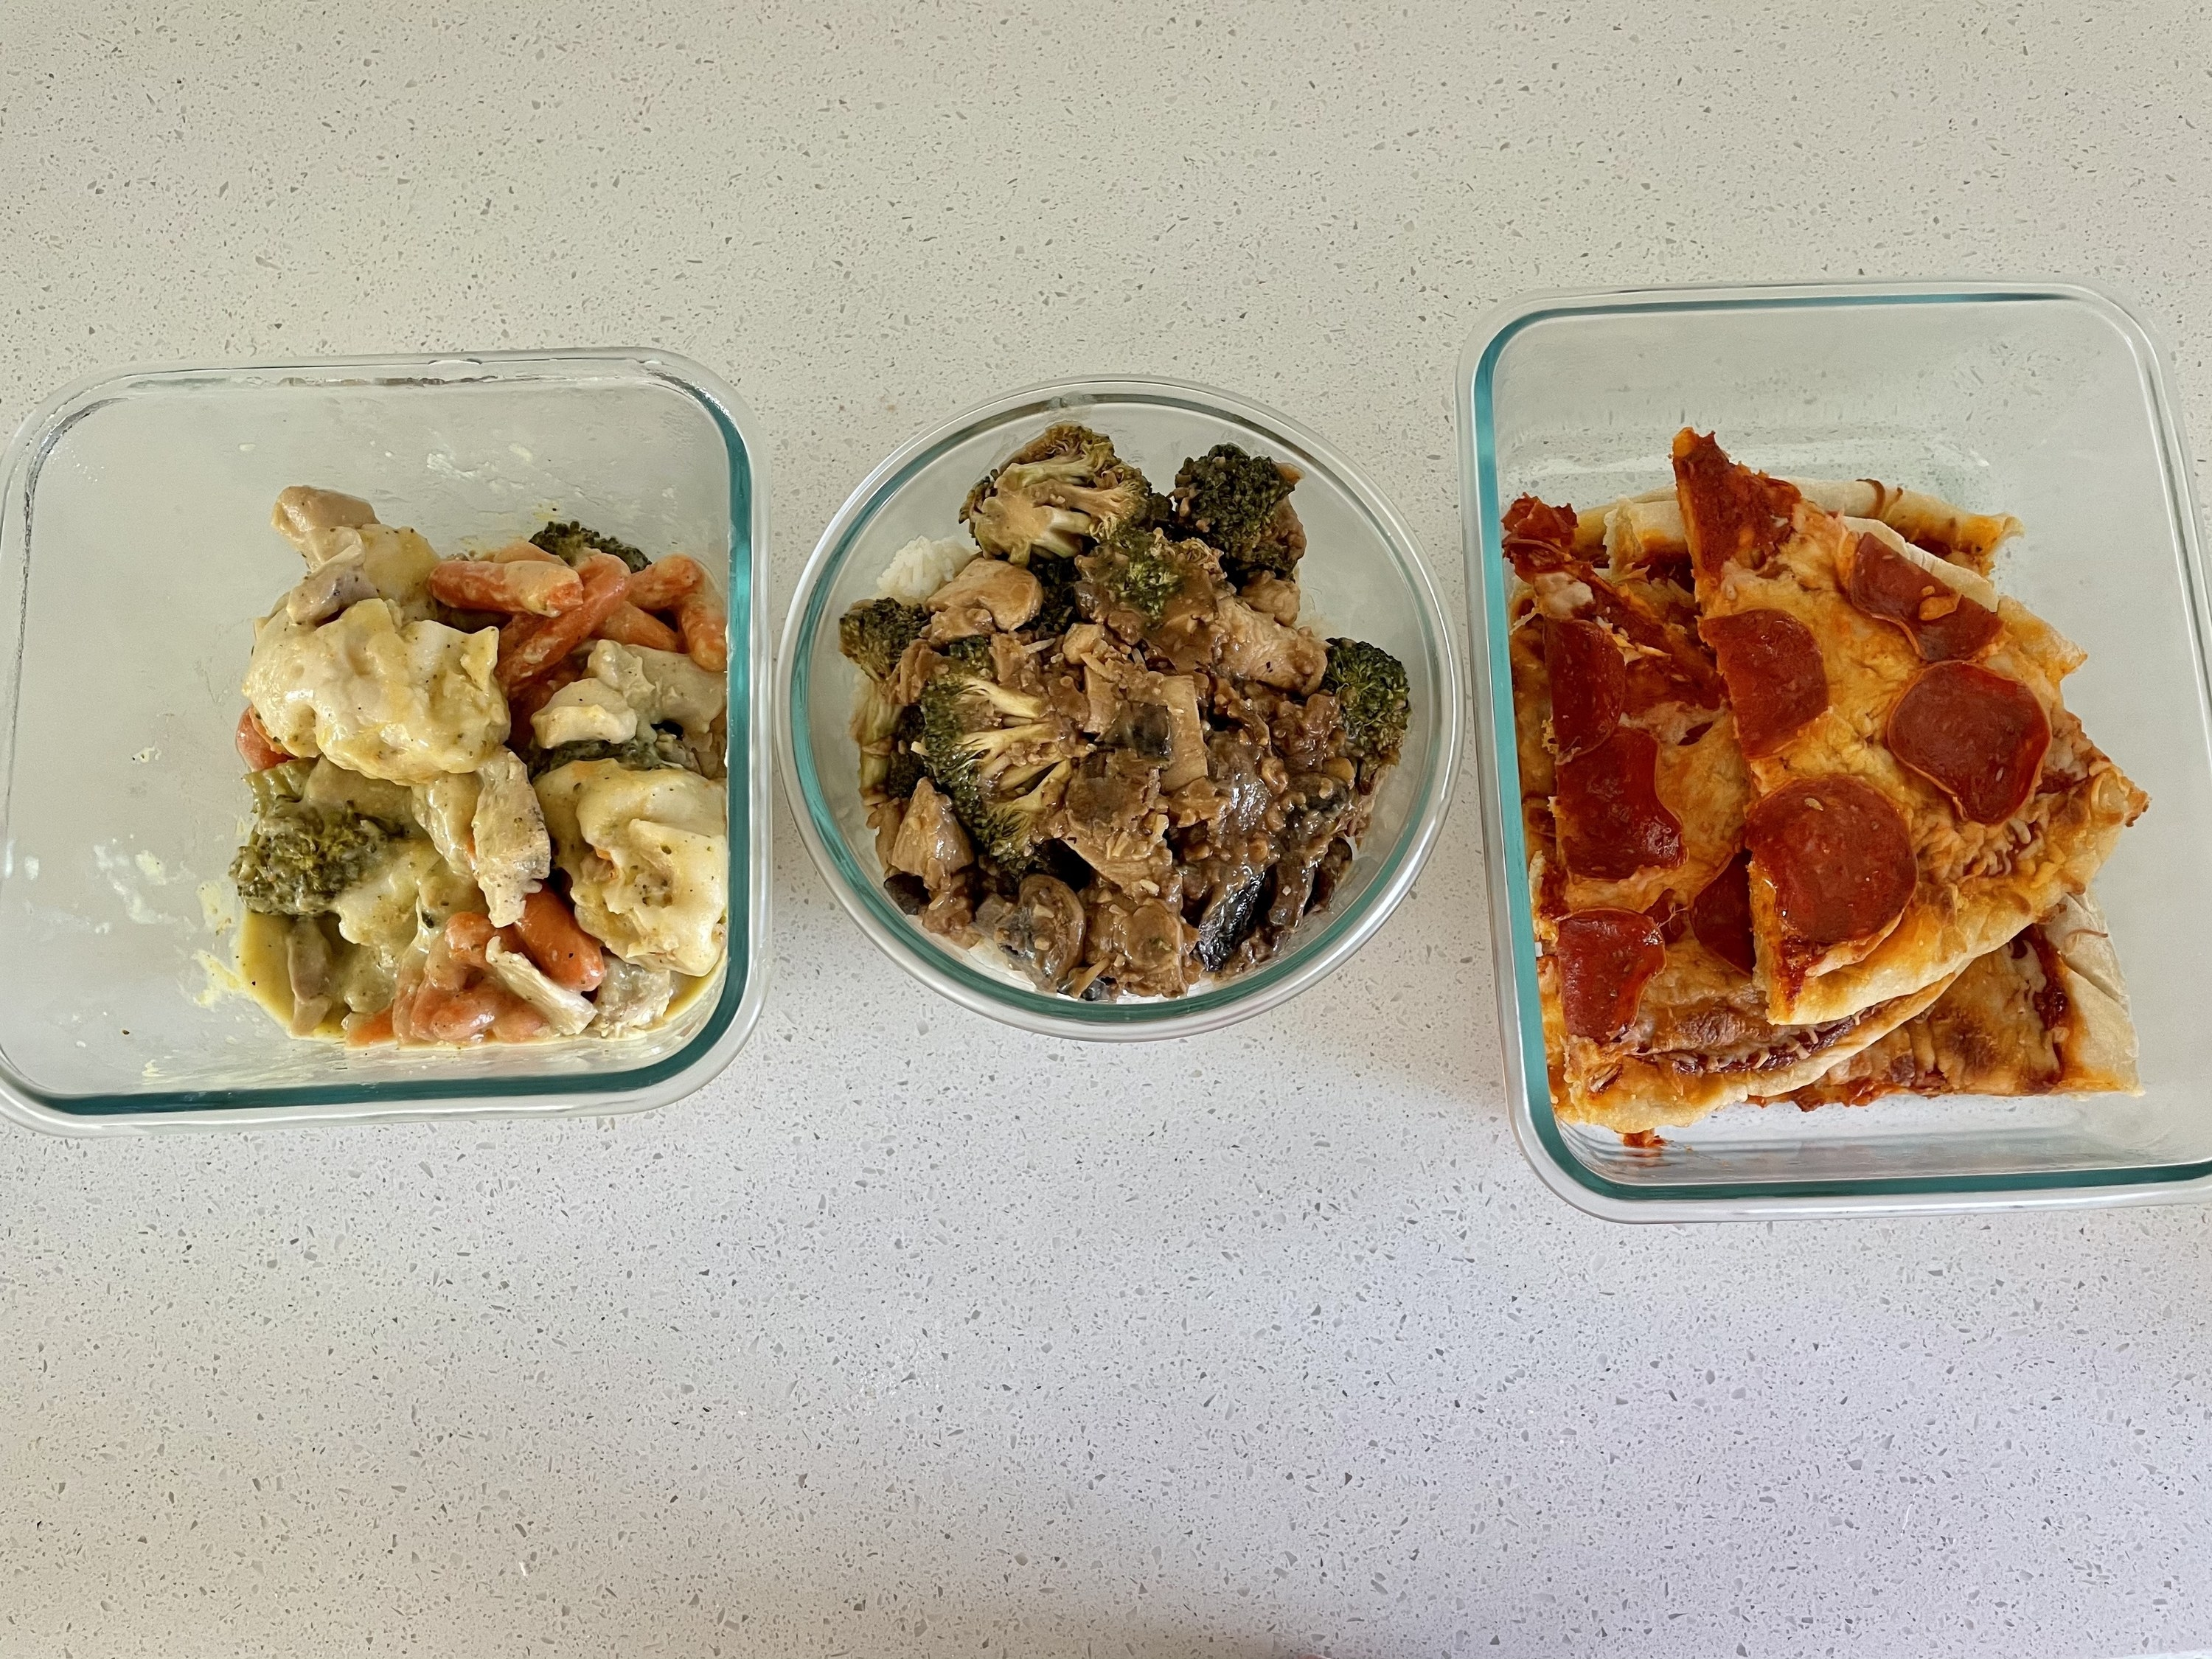 Three containers of leftovers: chicken, stirfry, and pizza